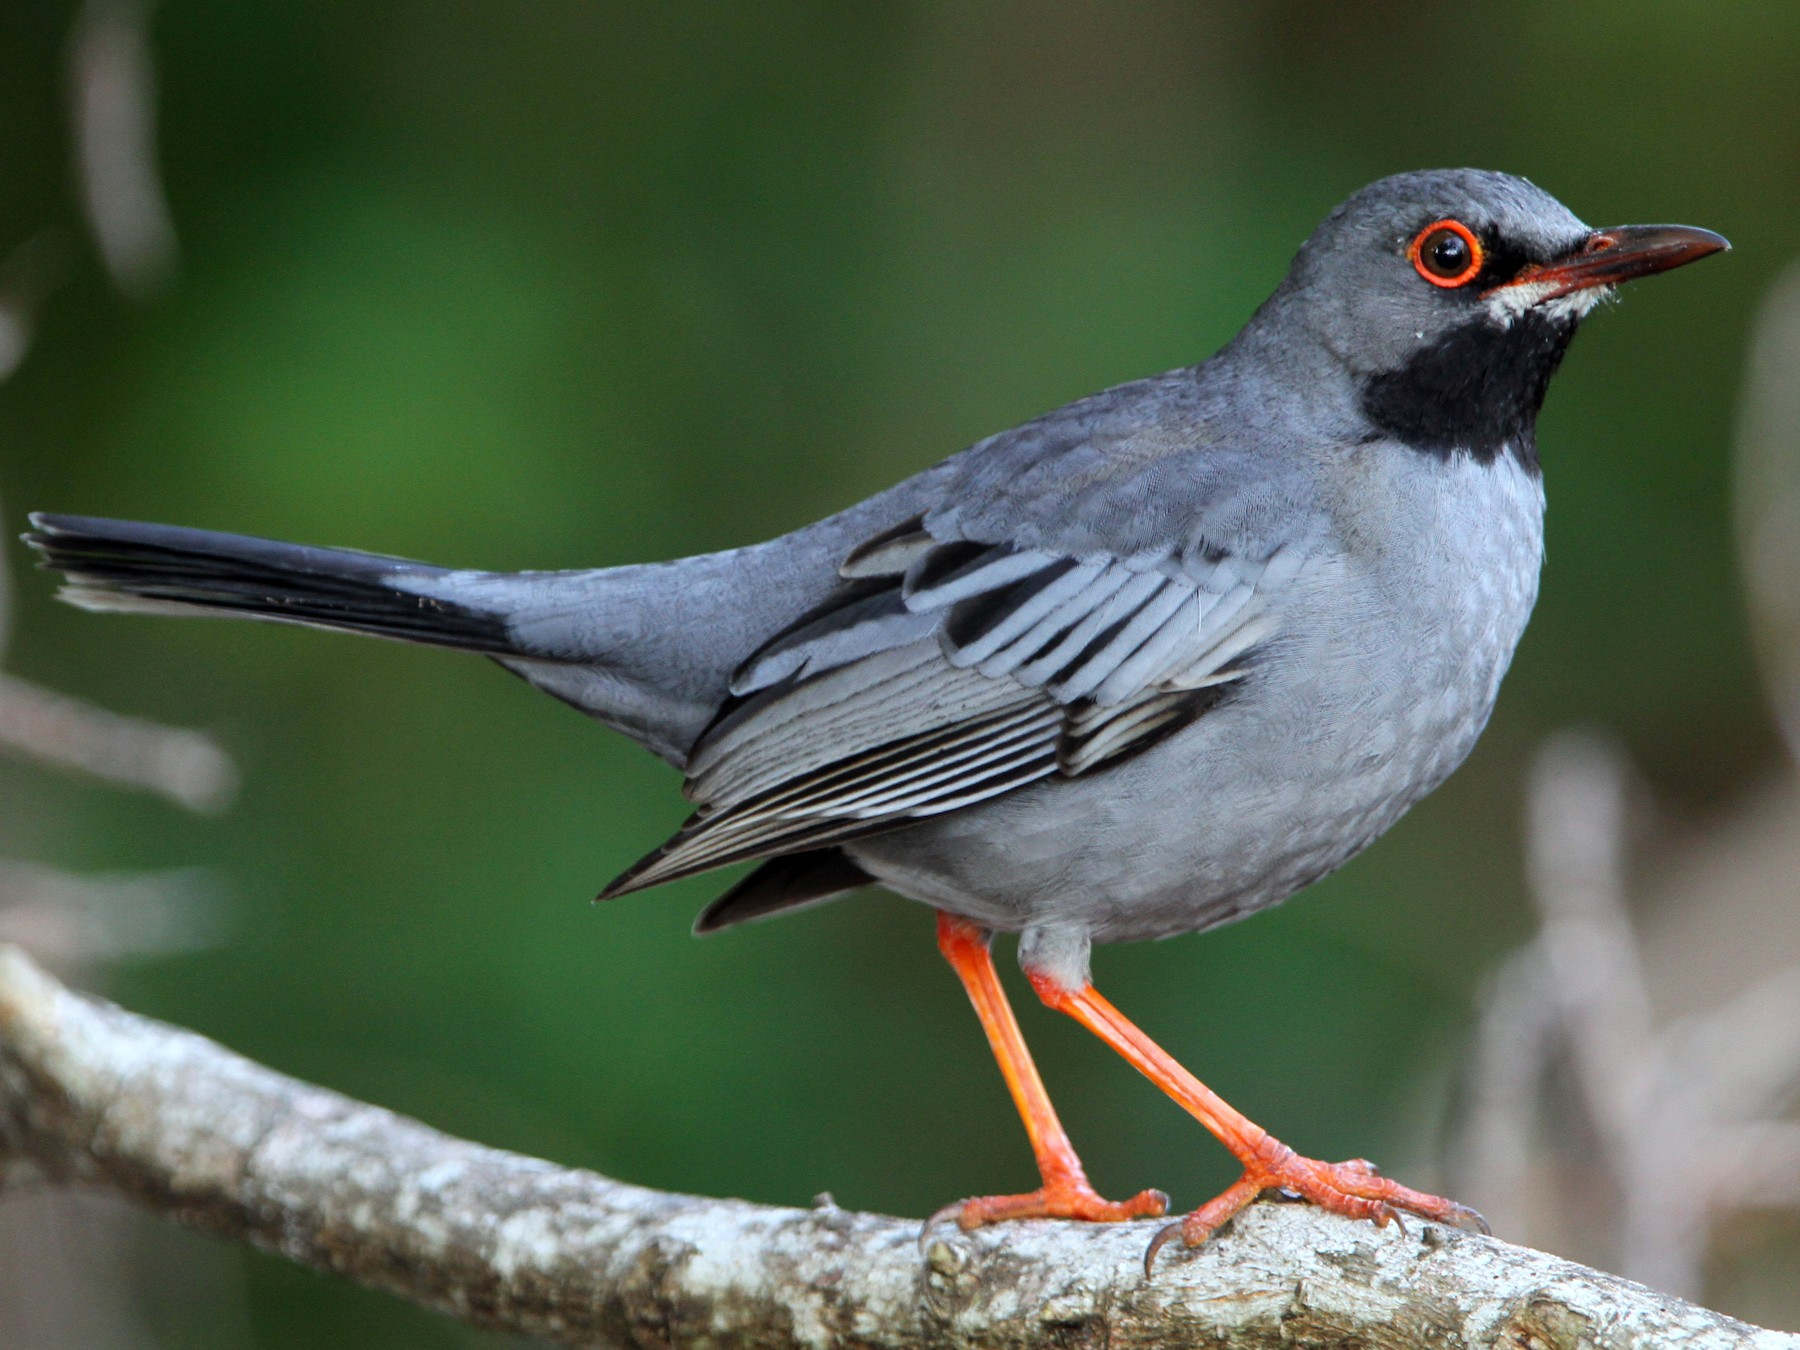 Red-legged Thrush - Christoph Moning